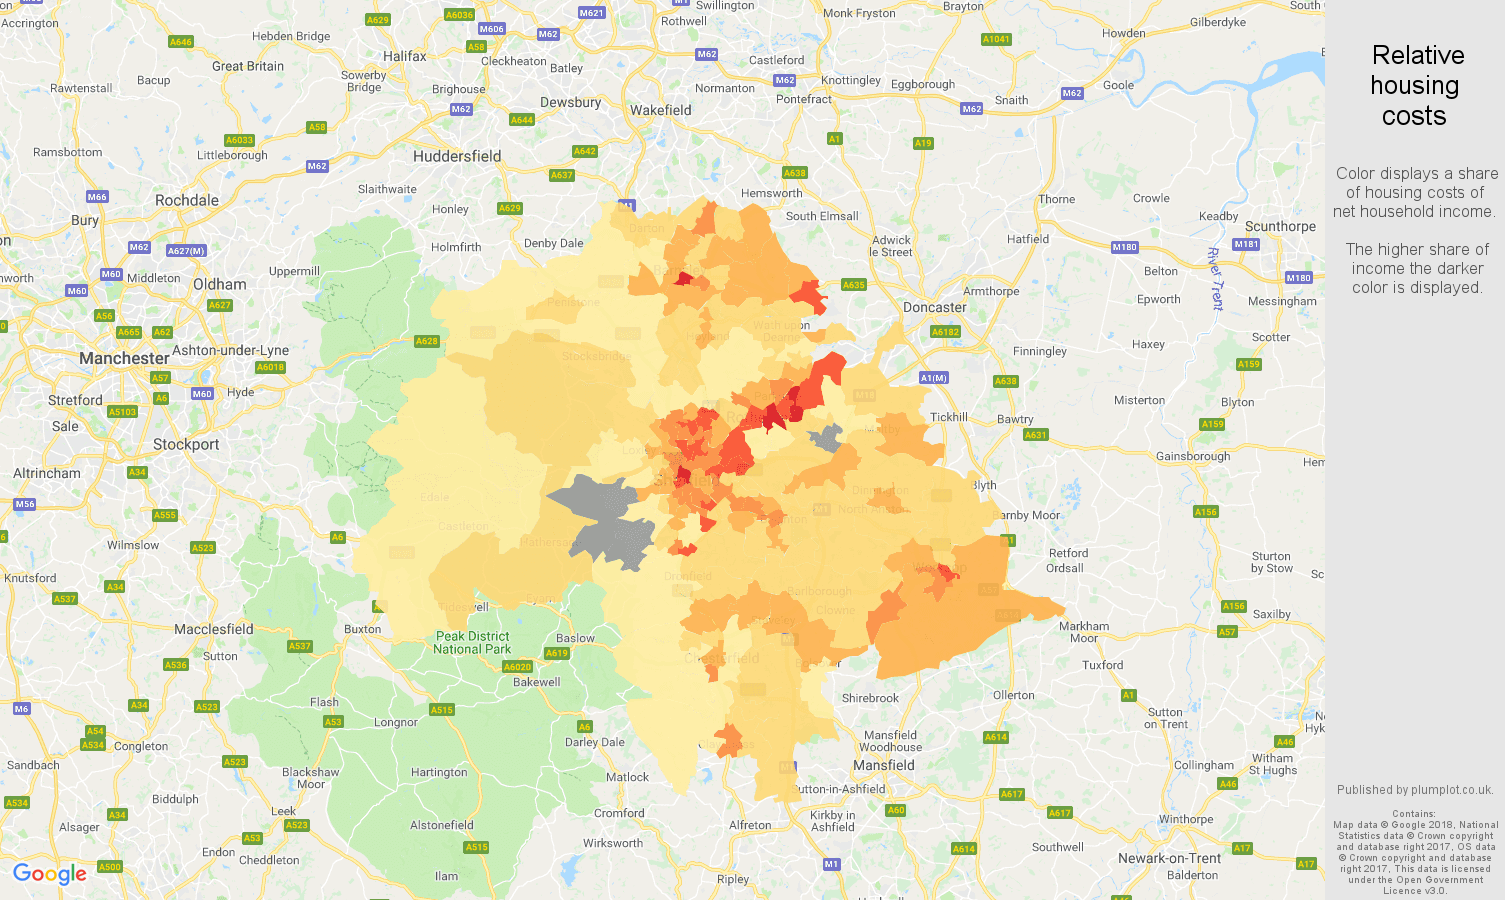 Sheffield relative housing costs map